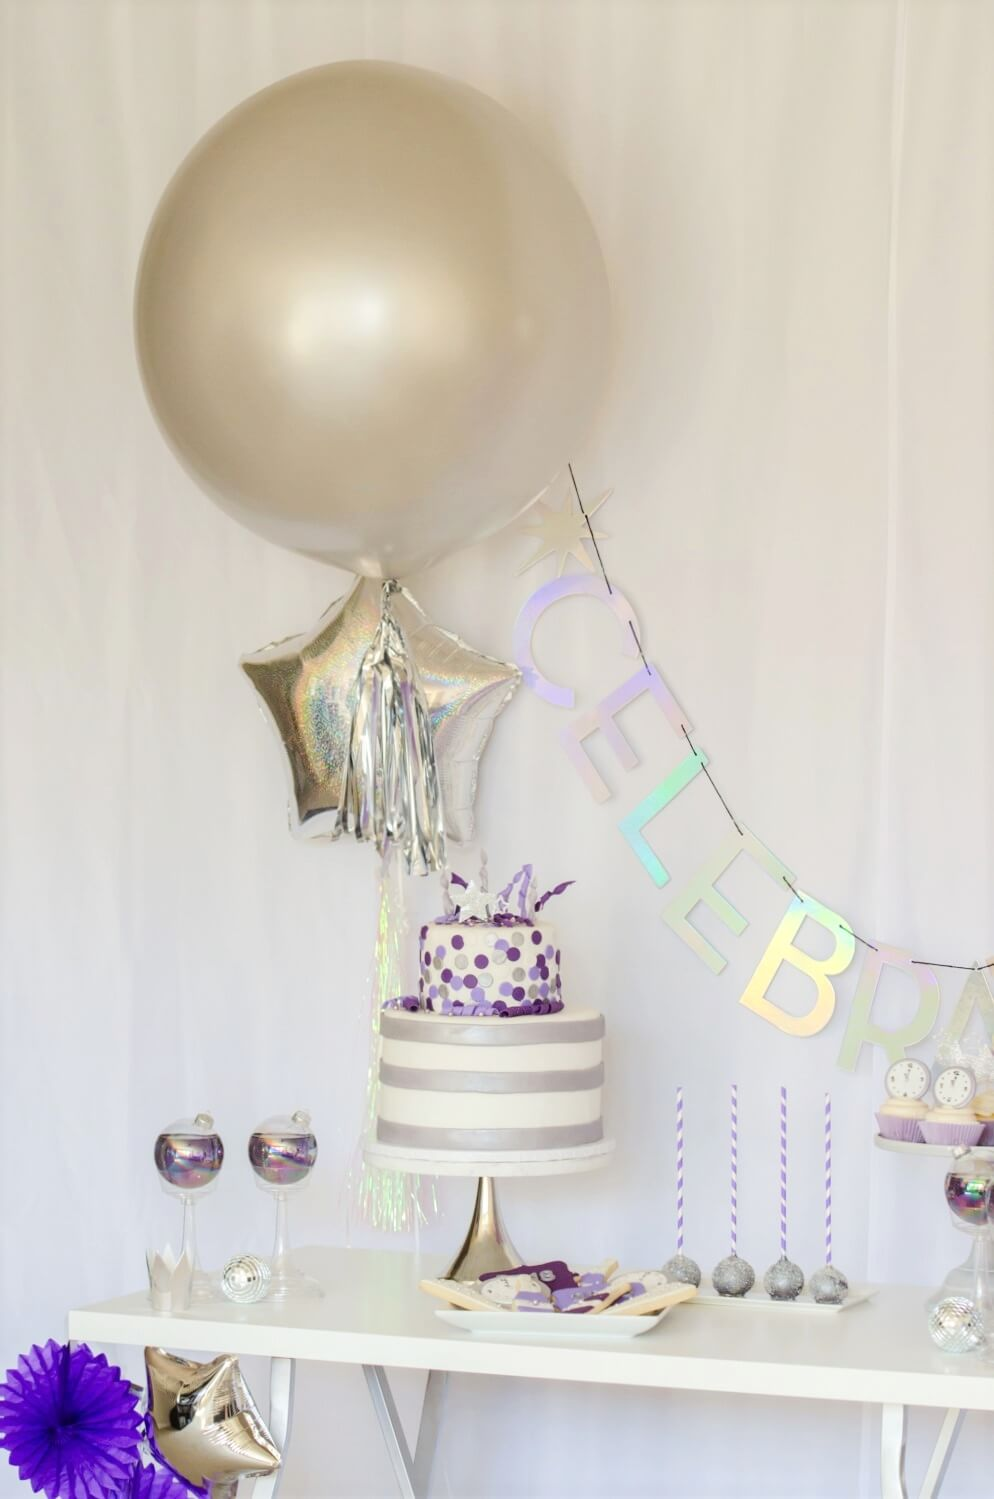 New Years party decor ideas.  Visit the blog for more ideas for your dessert table.